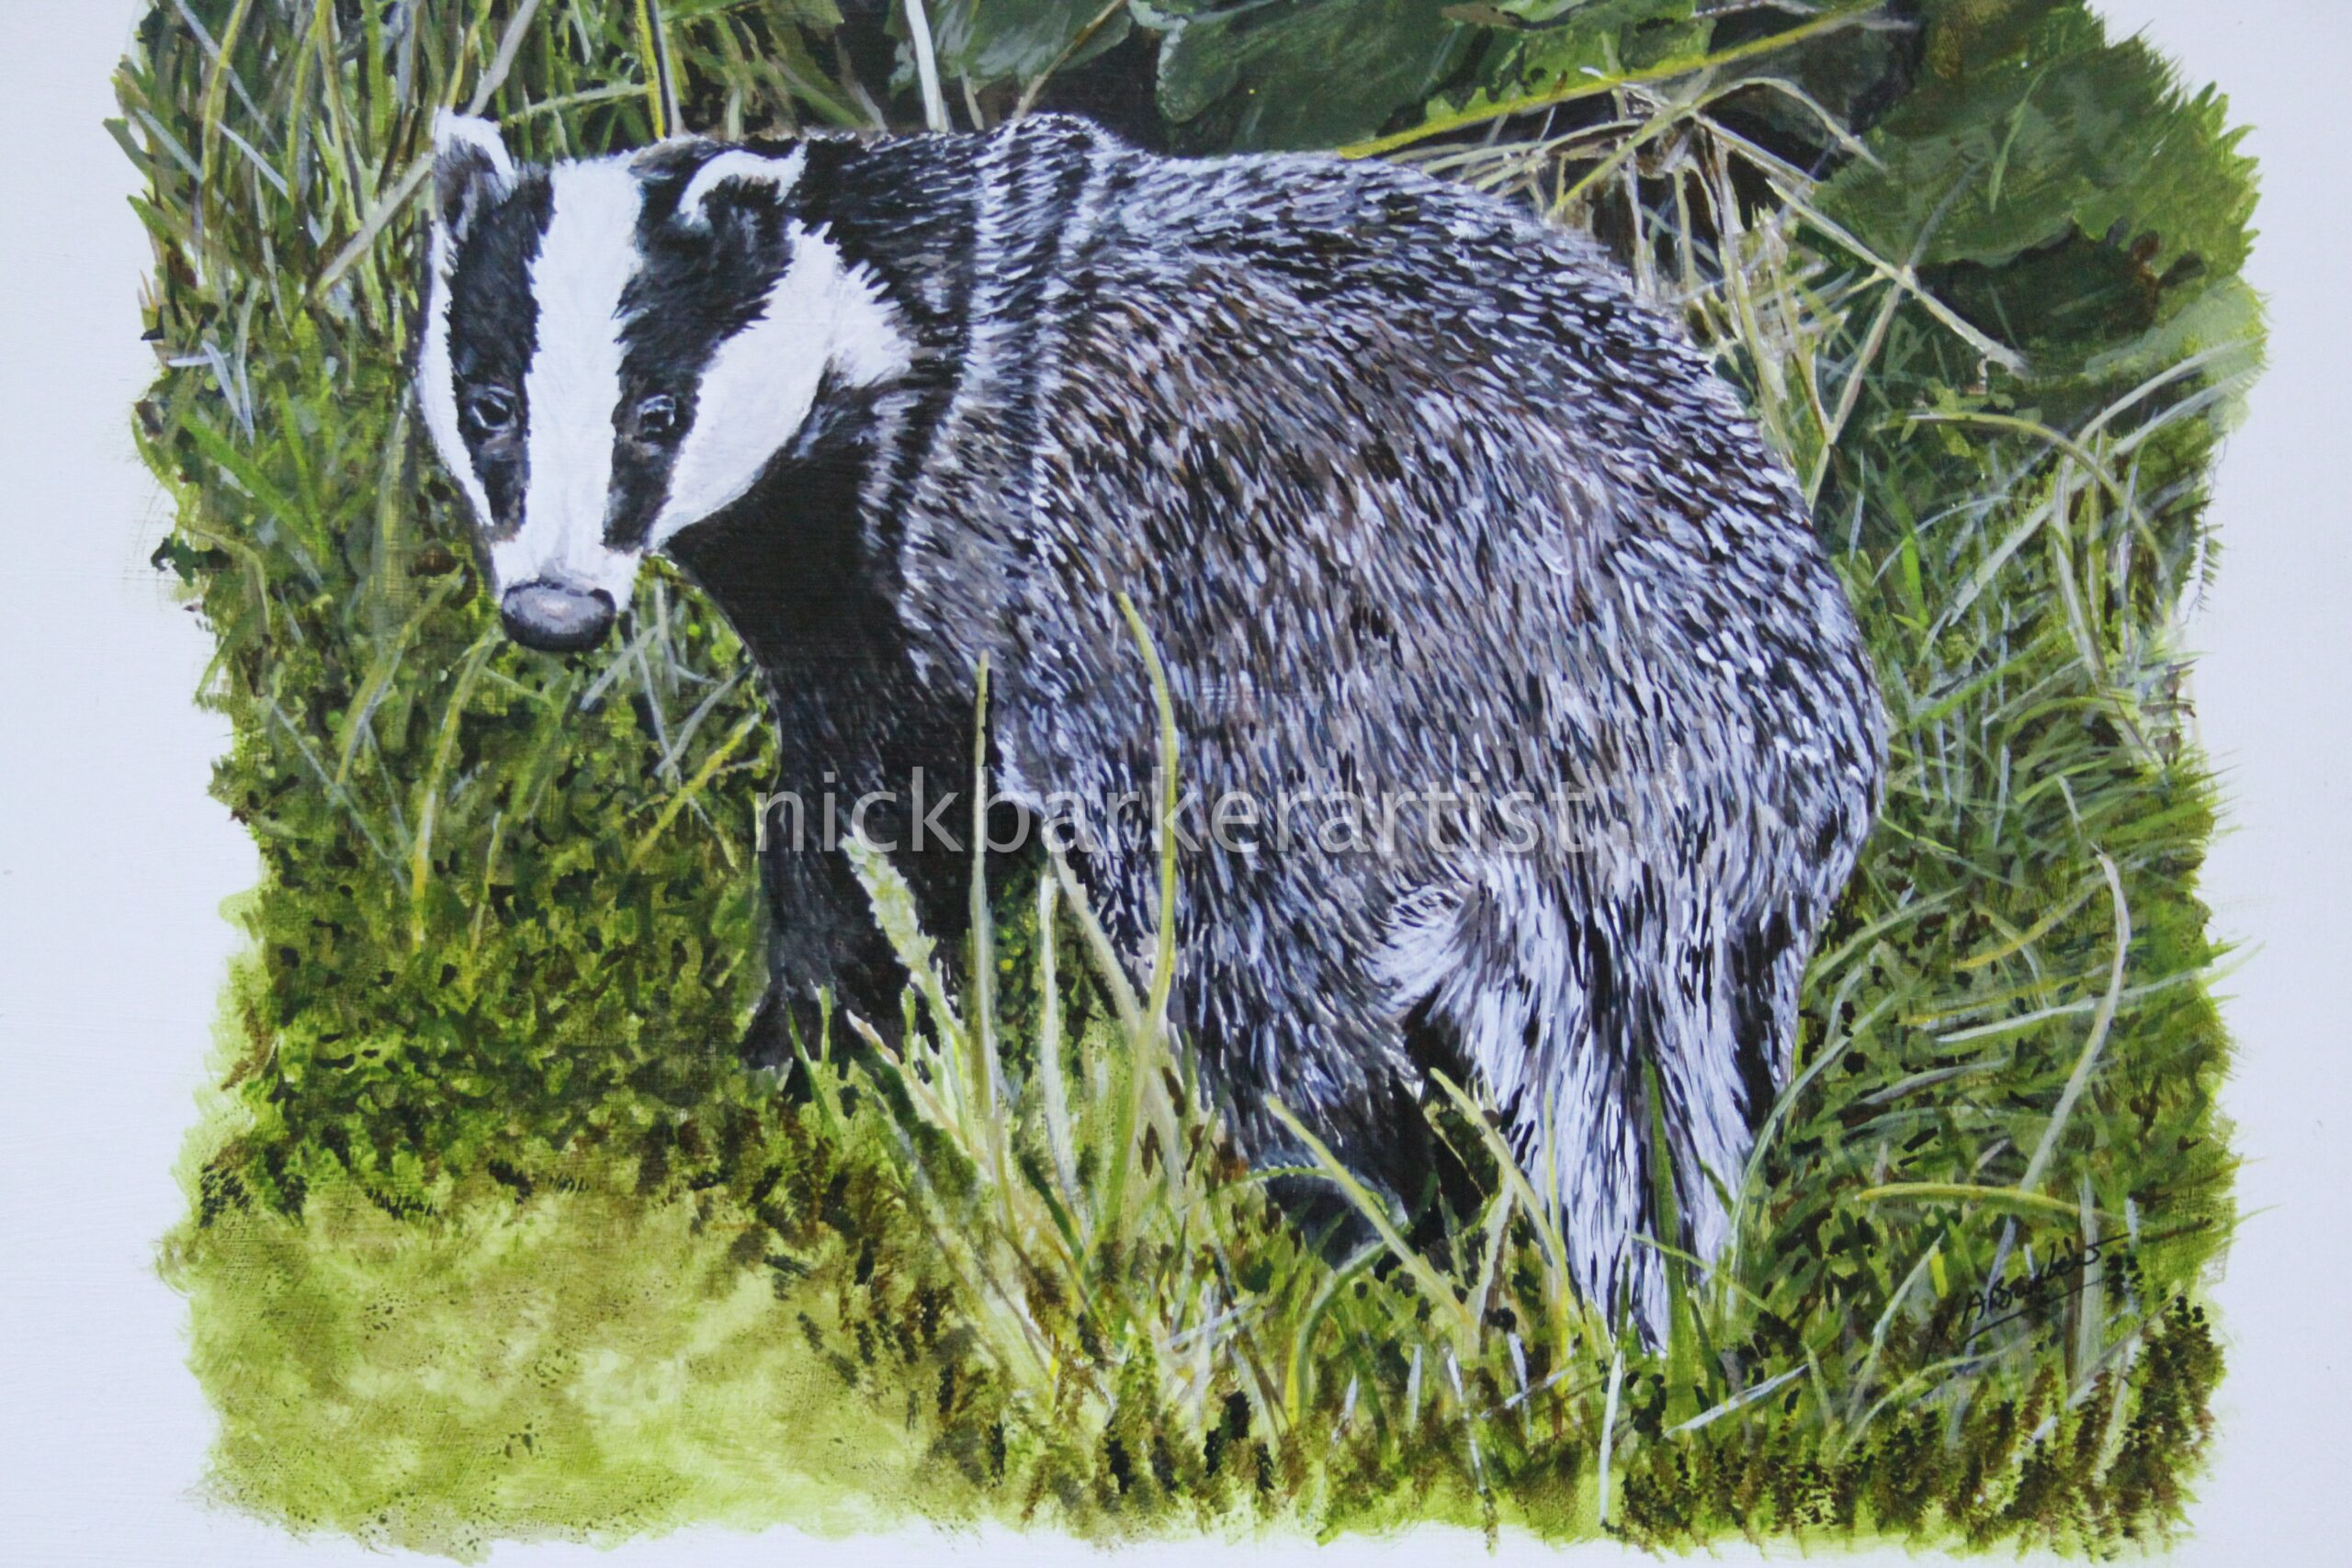 'Badger' By Nick Barker- 50cm x 45cm - Acrylic - £400